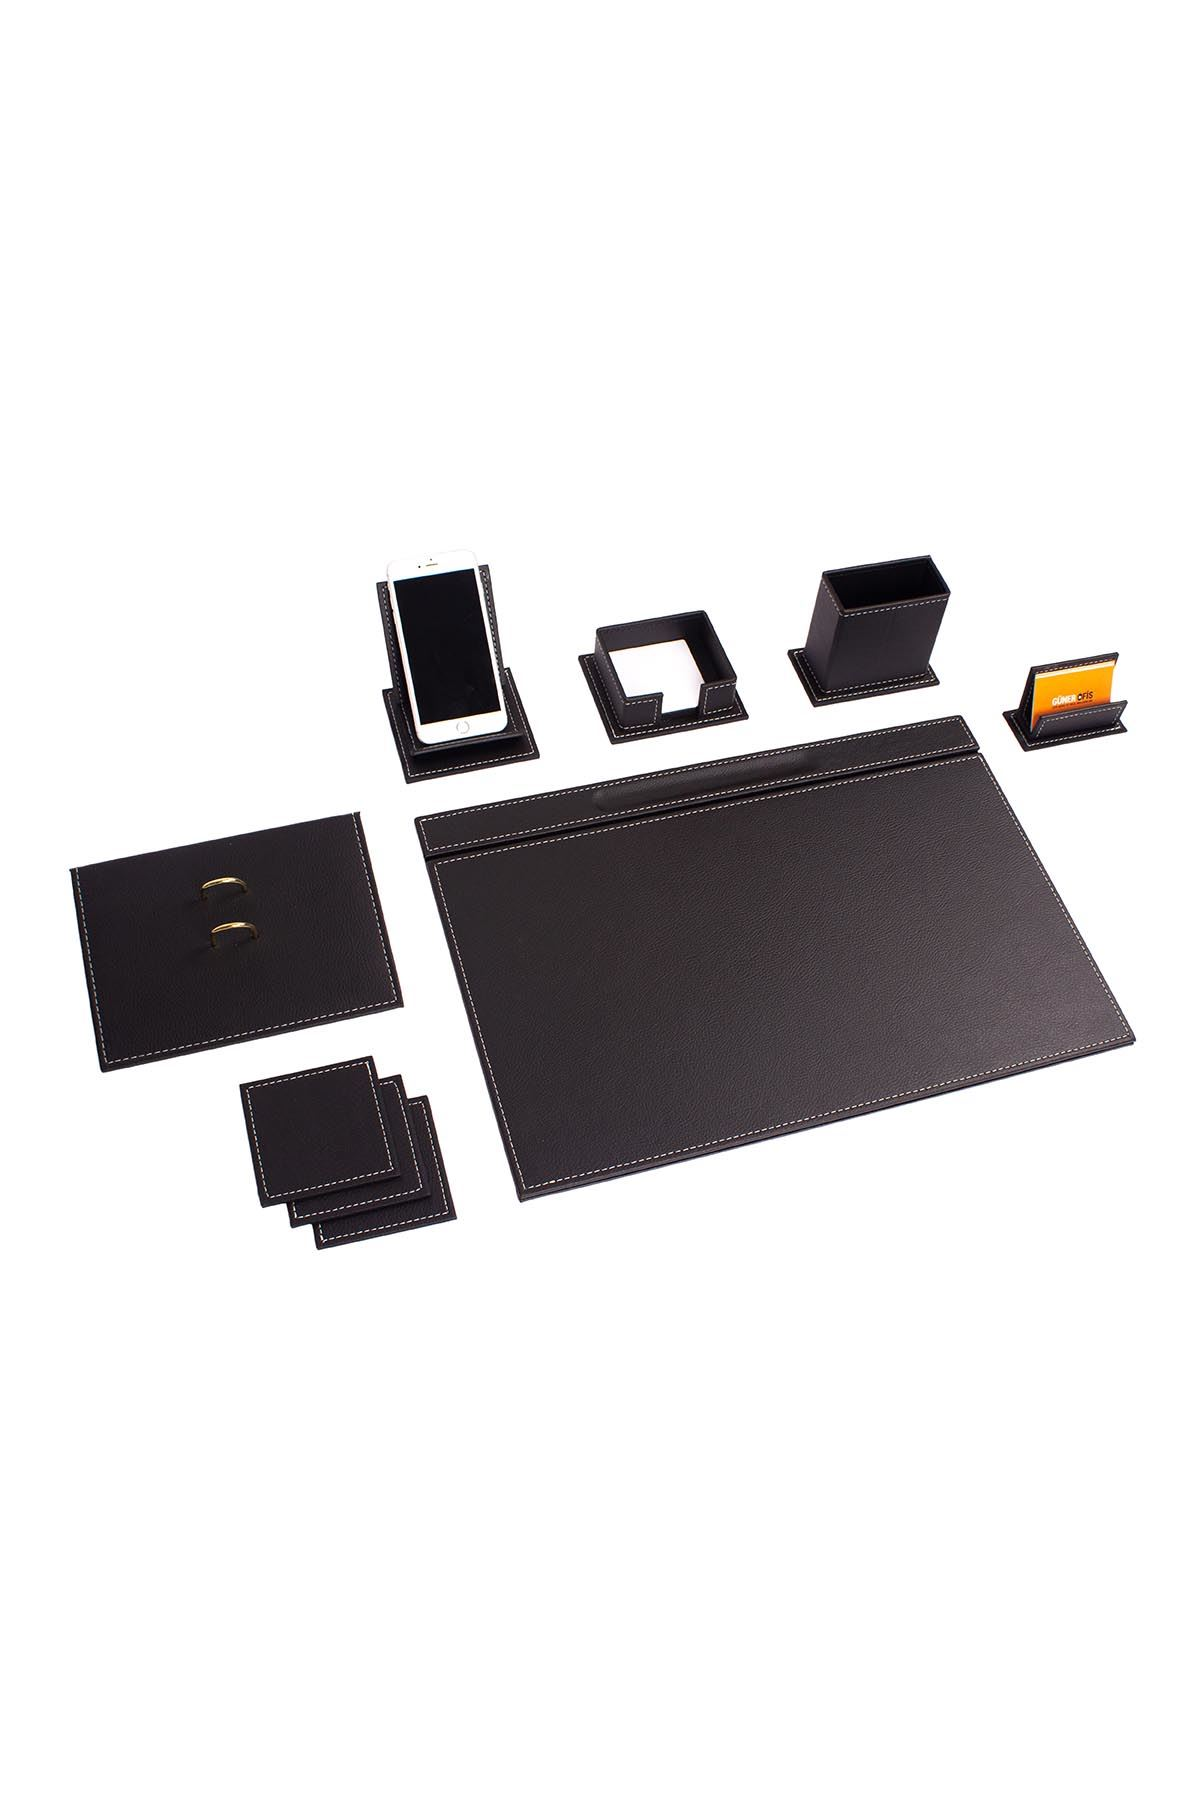 Vega Leather Desk Set Black 9 Accessories